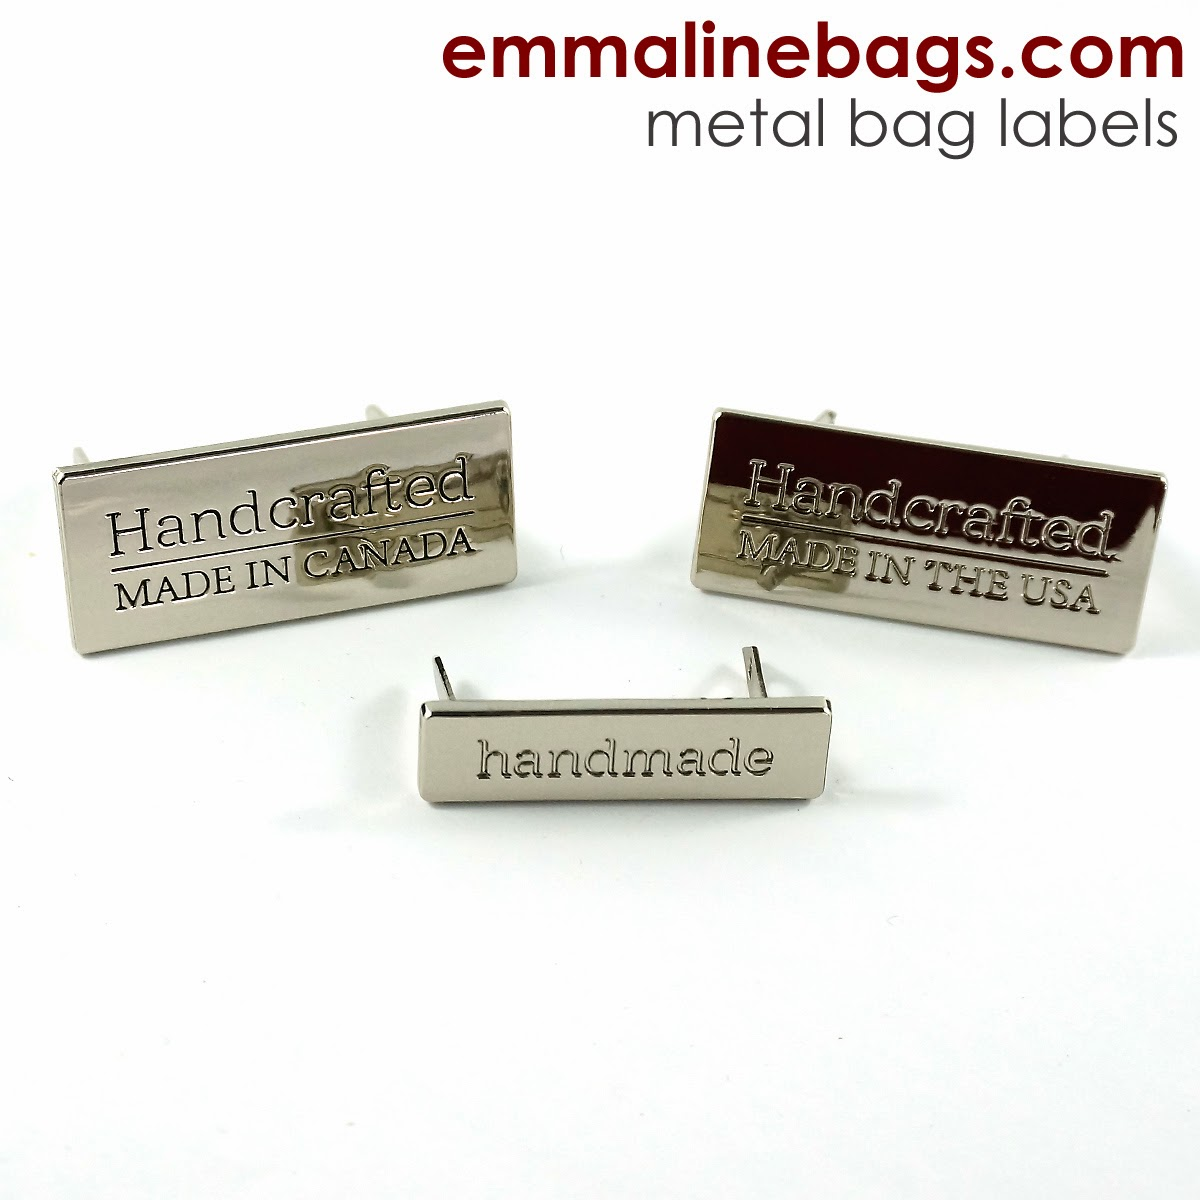 Handcrafted and Handmade bag labels